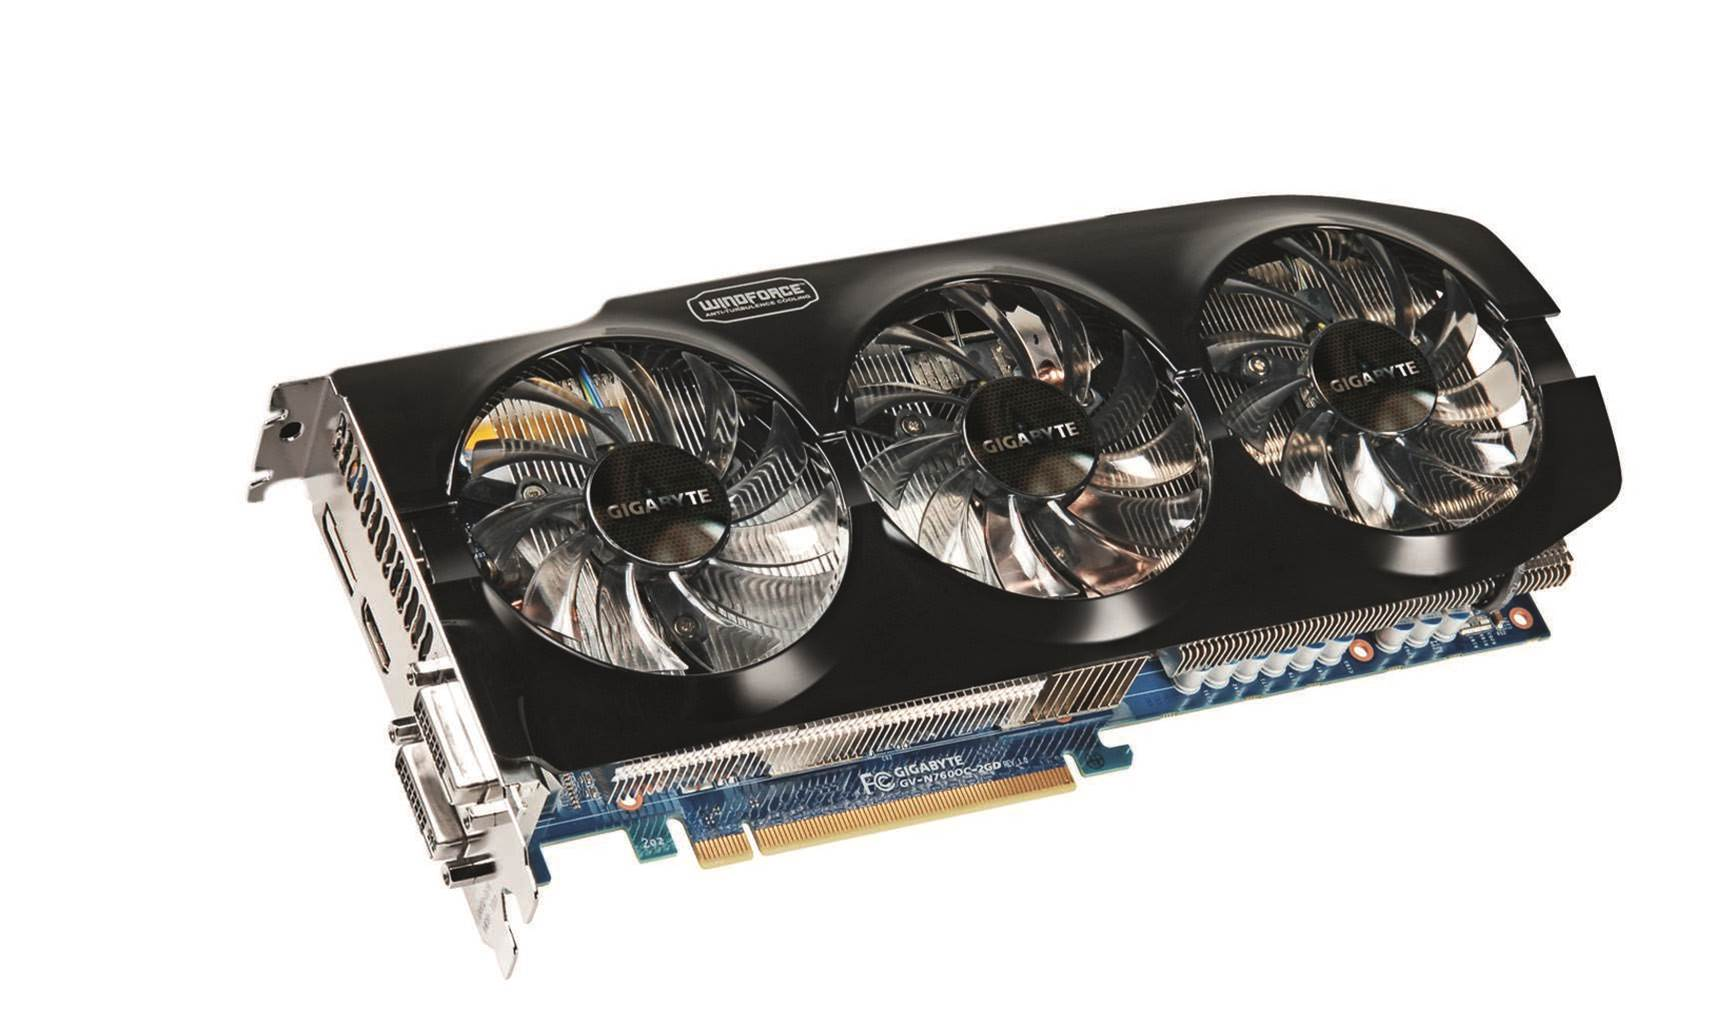 Review: Gigabyte GeForce GTX 760 OC Edition